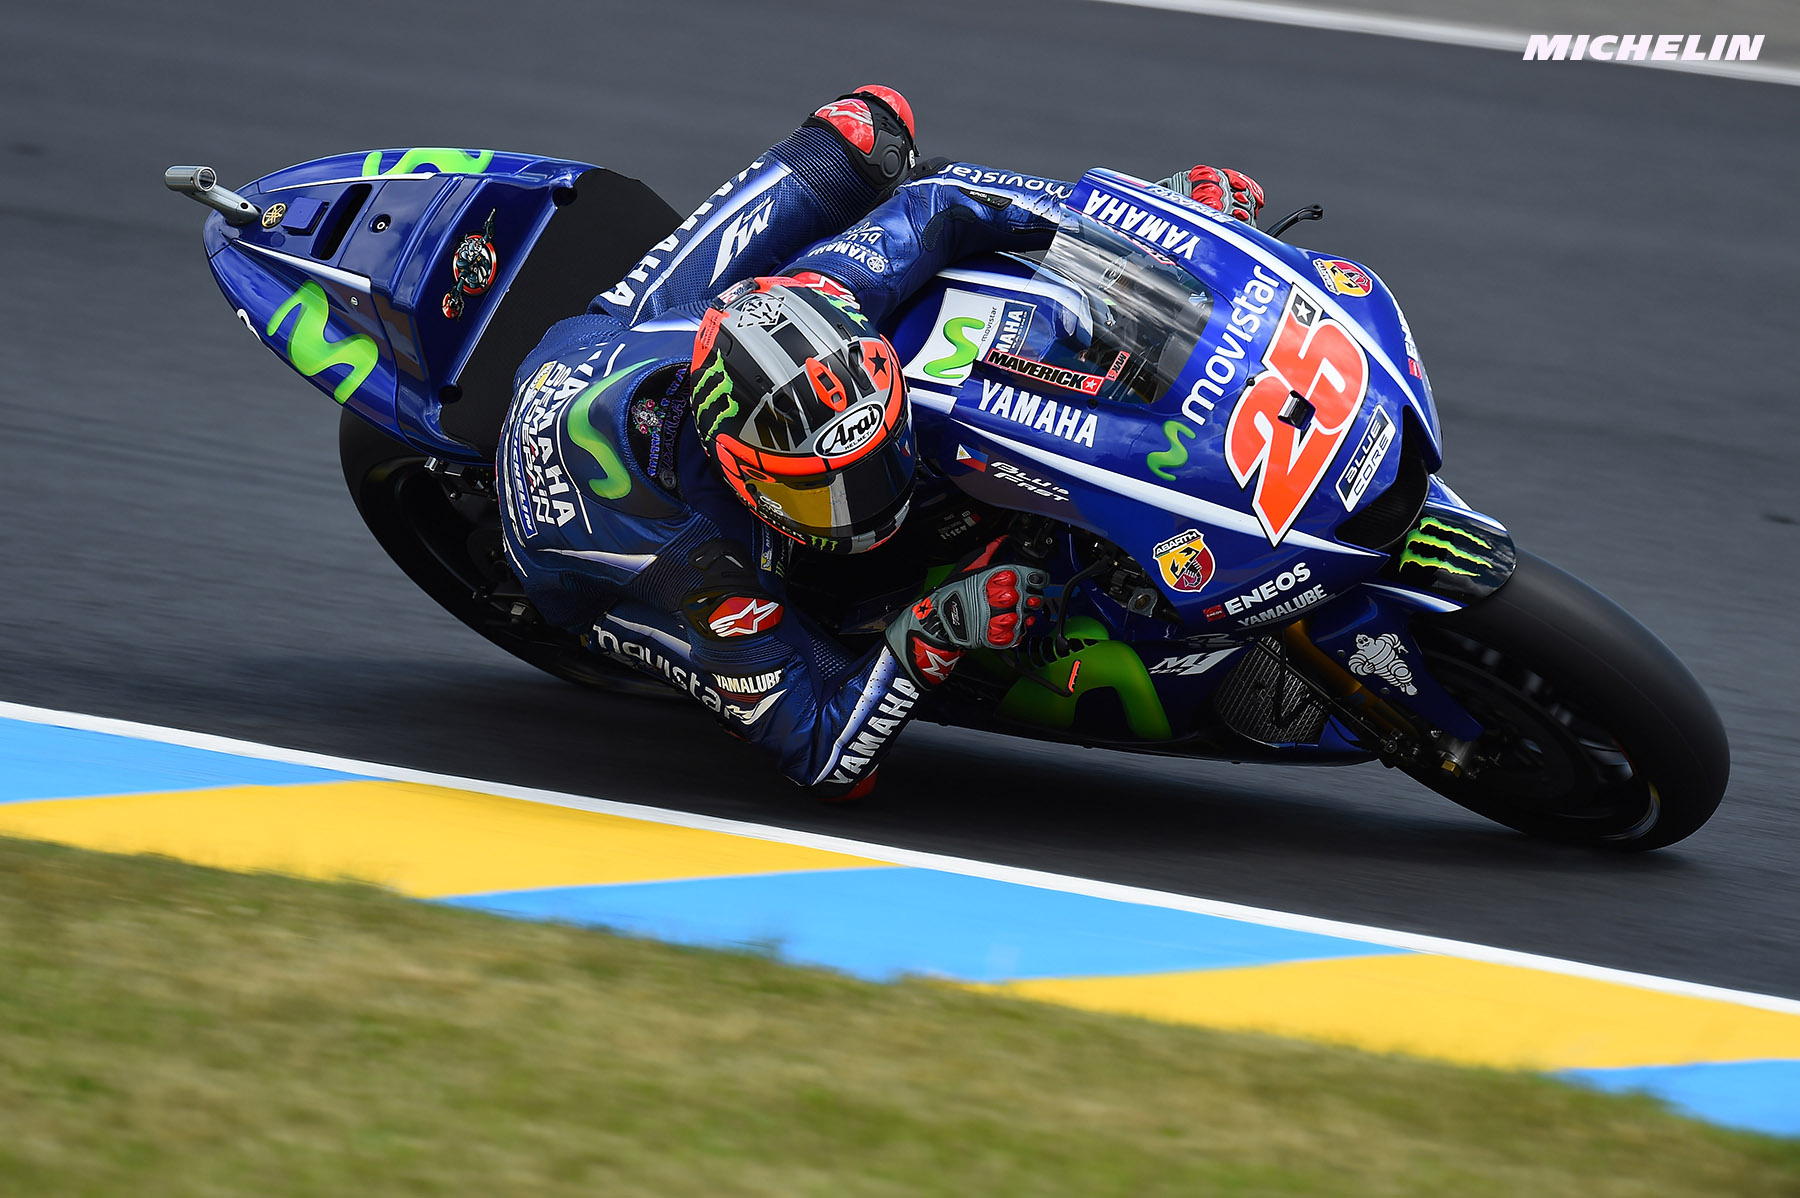 MotoGP: a flawless weekend for Viñales at Le Mans